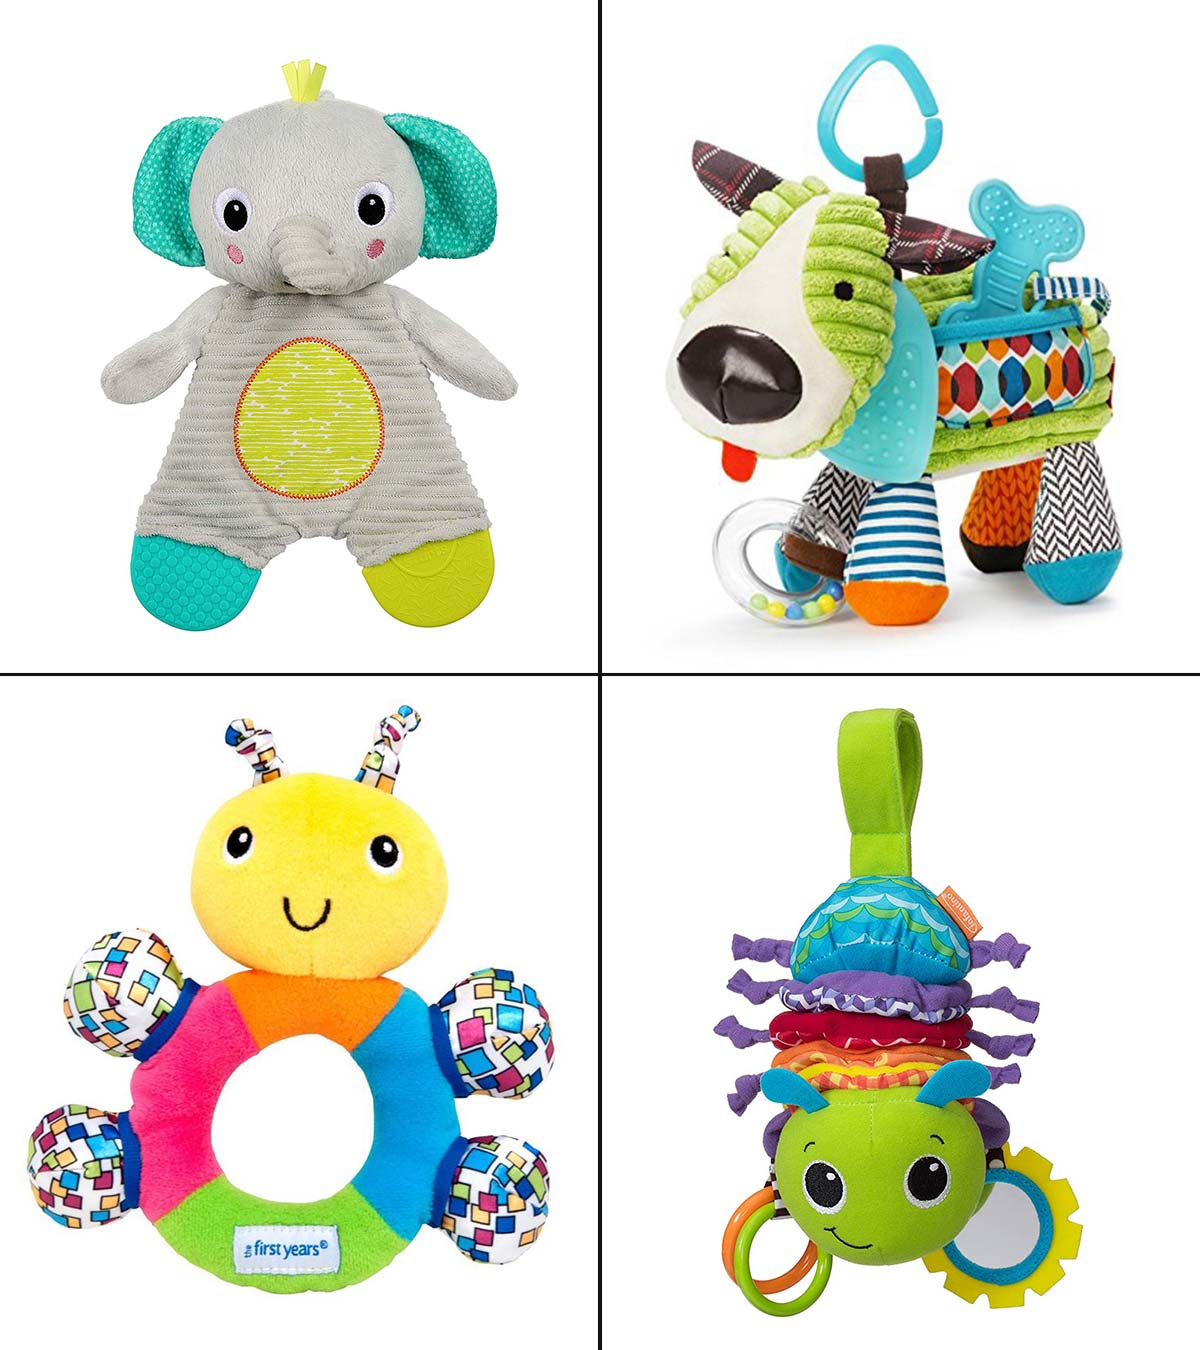 17 Best Toys For 5-Month-Old Baby Of 2020